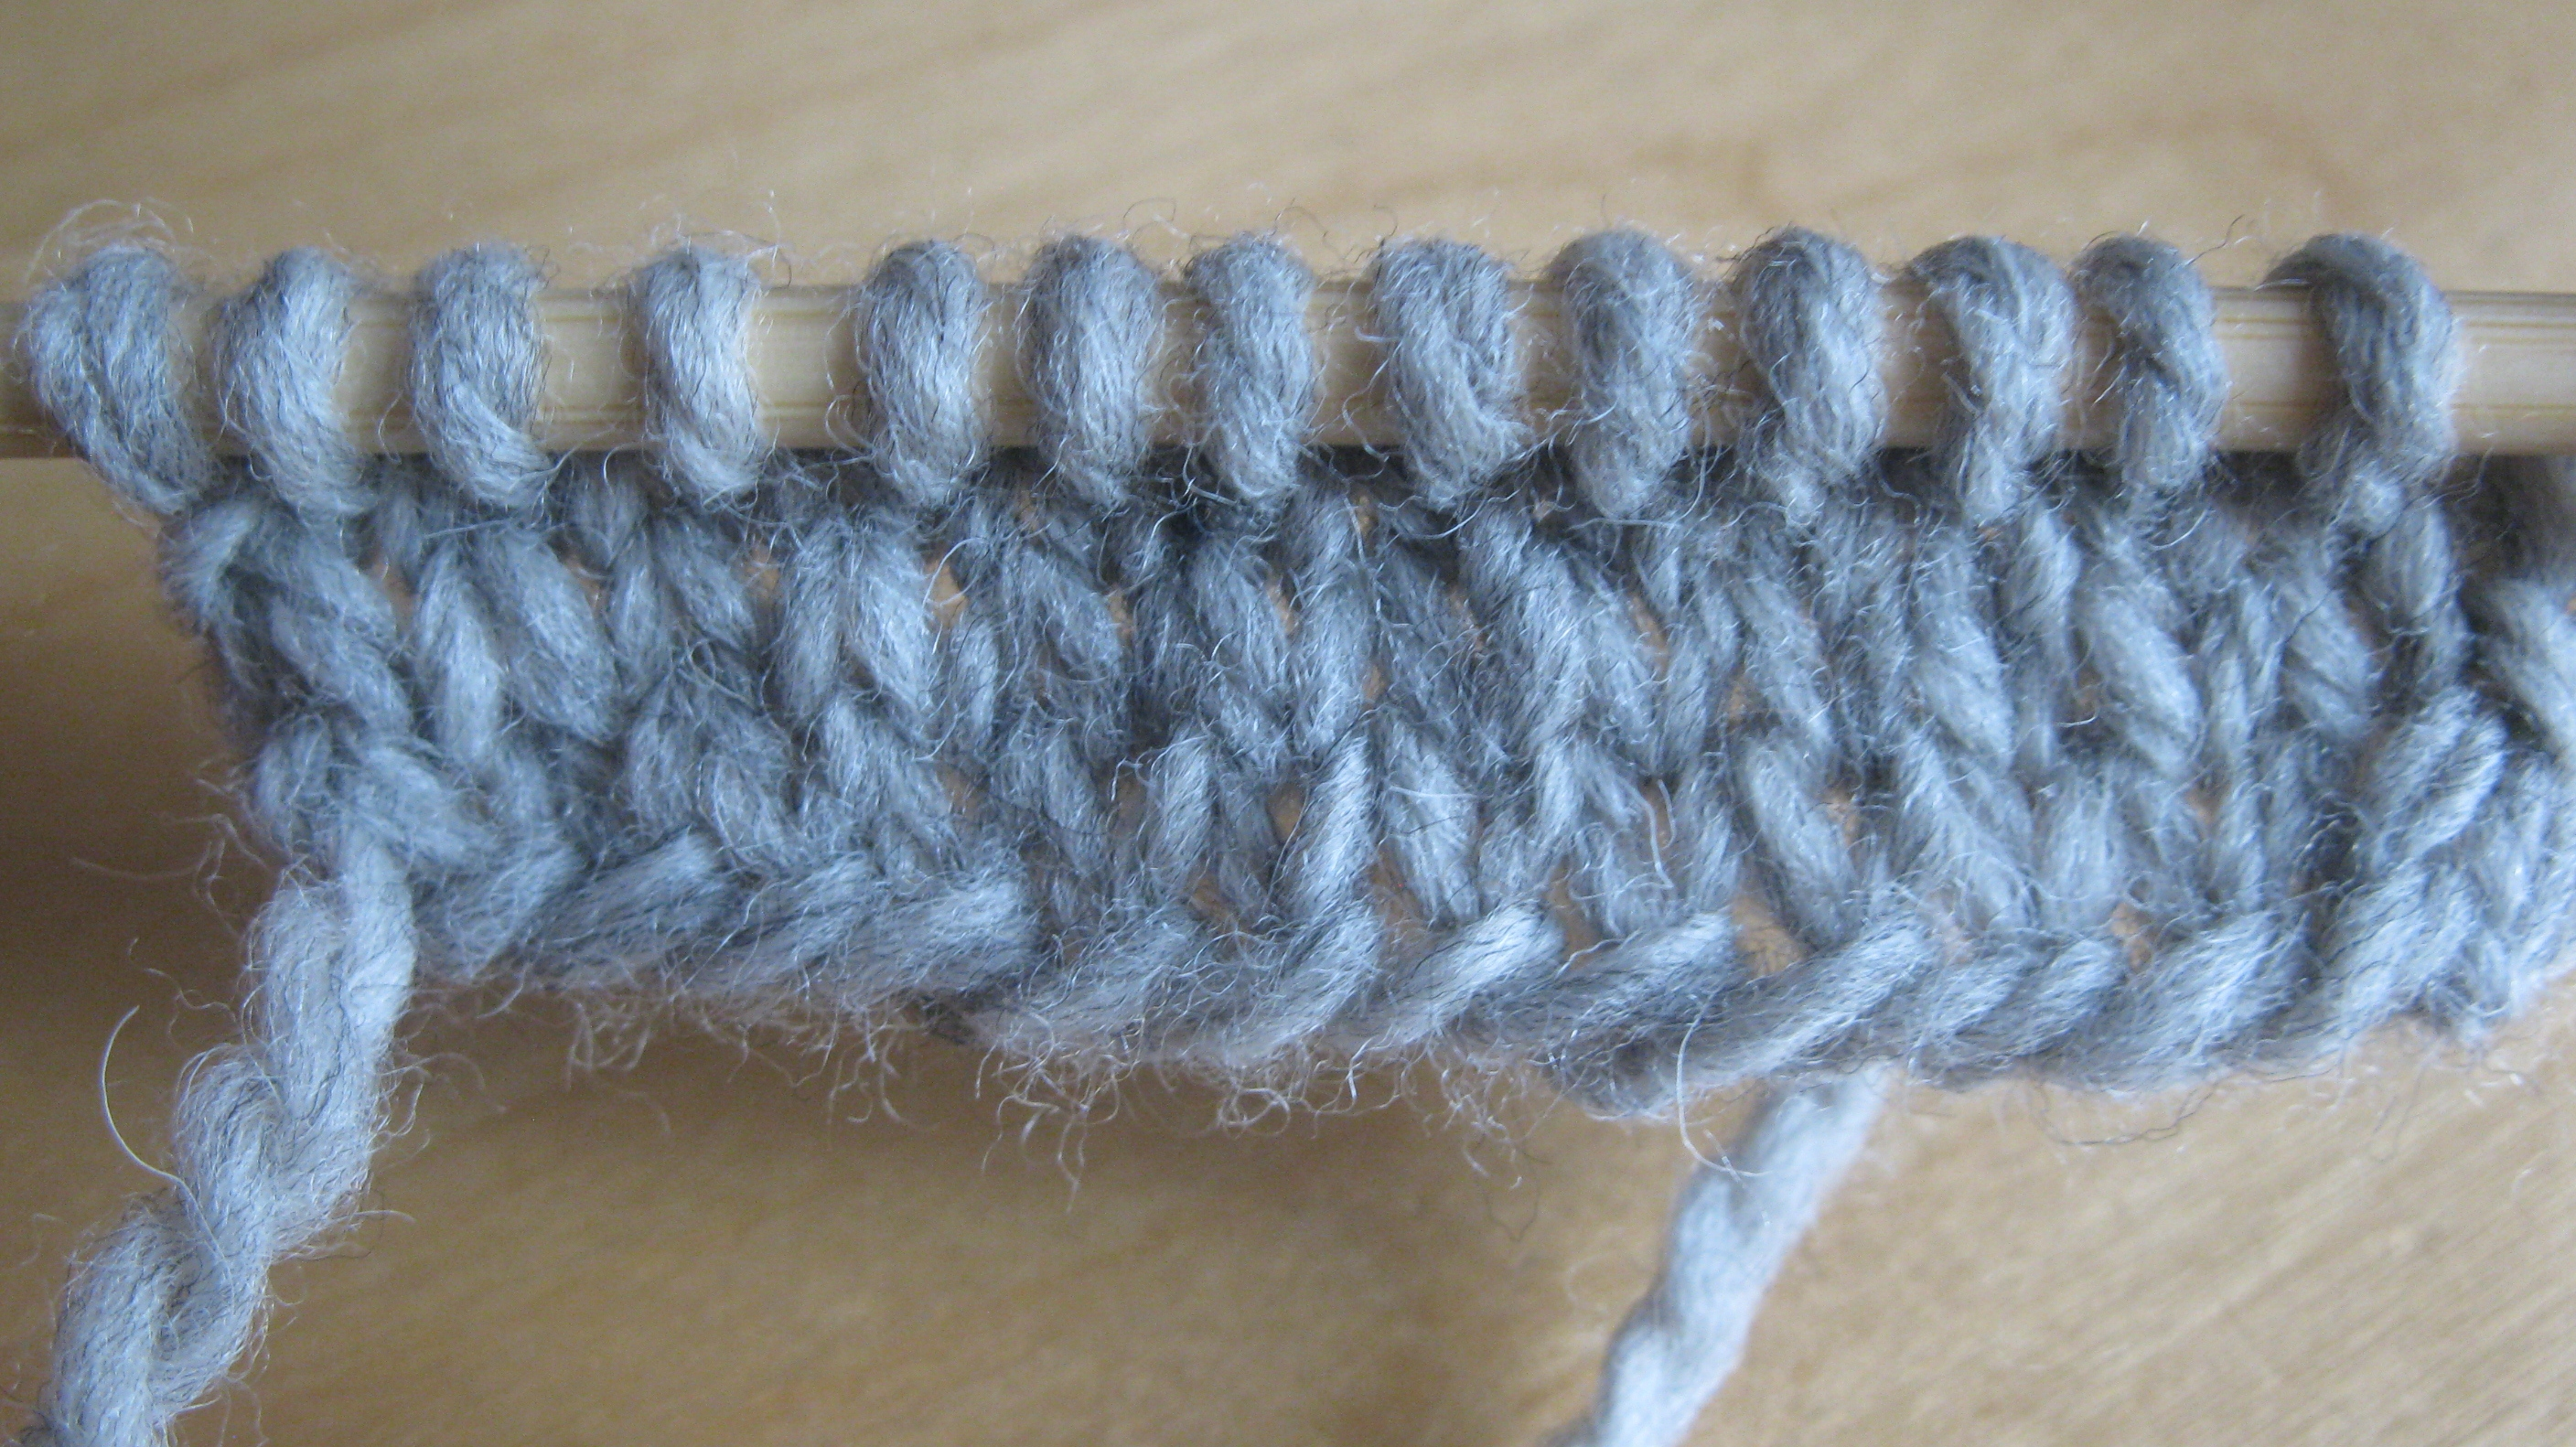 Knitting First Stitch Too Loose : Too tight? Let loose!   Espace Tricot Blog